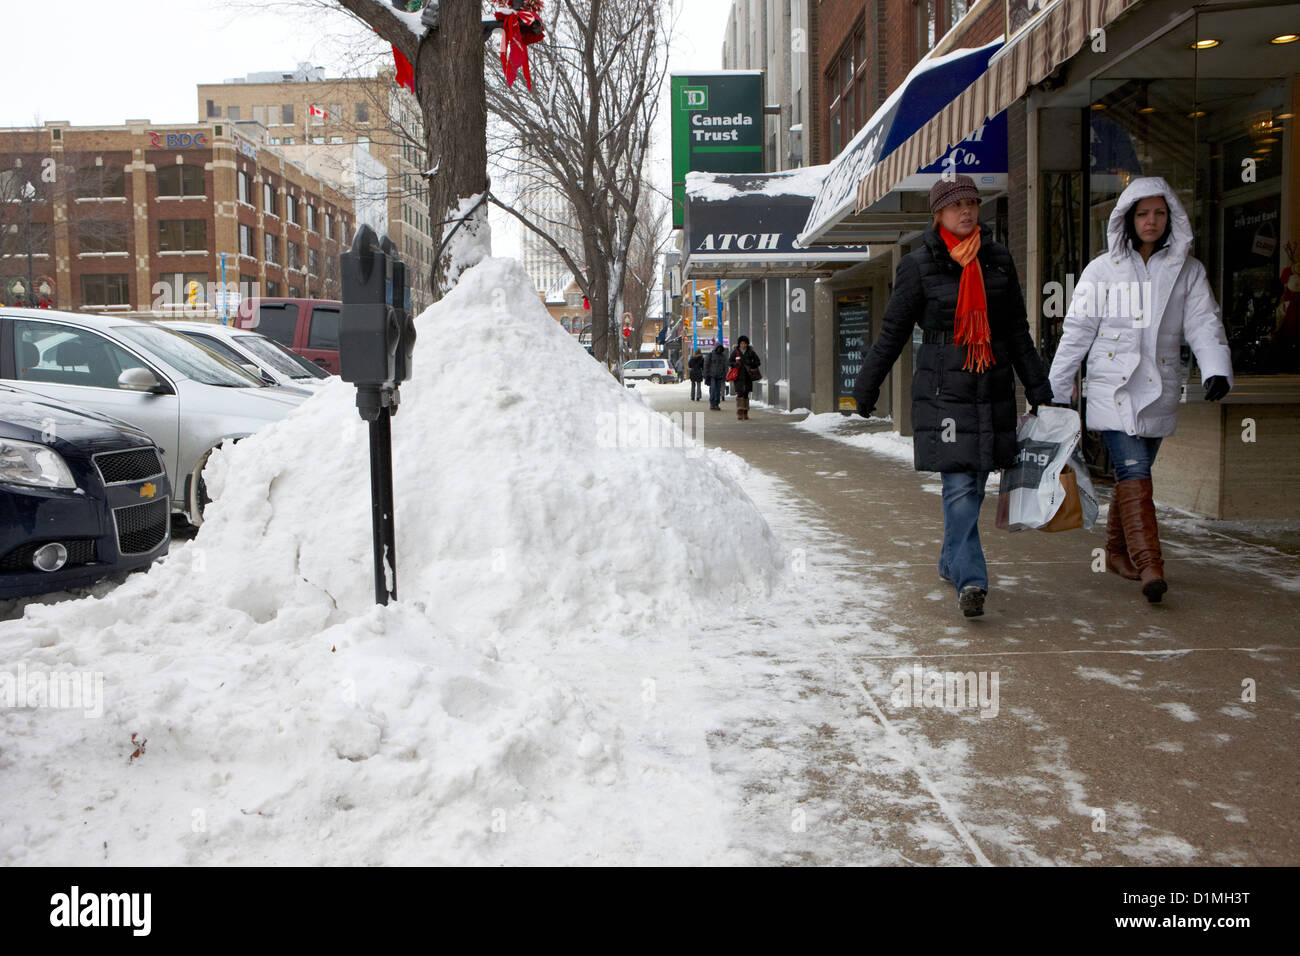 people walking along clear sidewalks in downtown city street Saskatoon Saskatchewan Canada - Stock Image